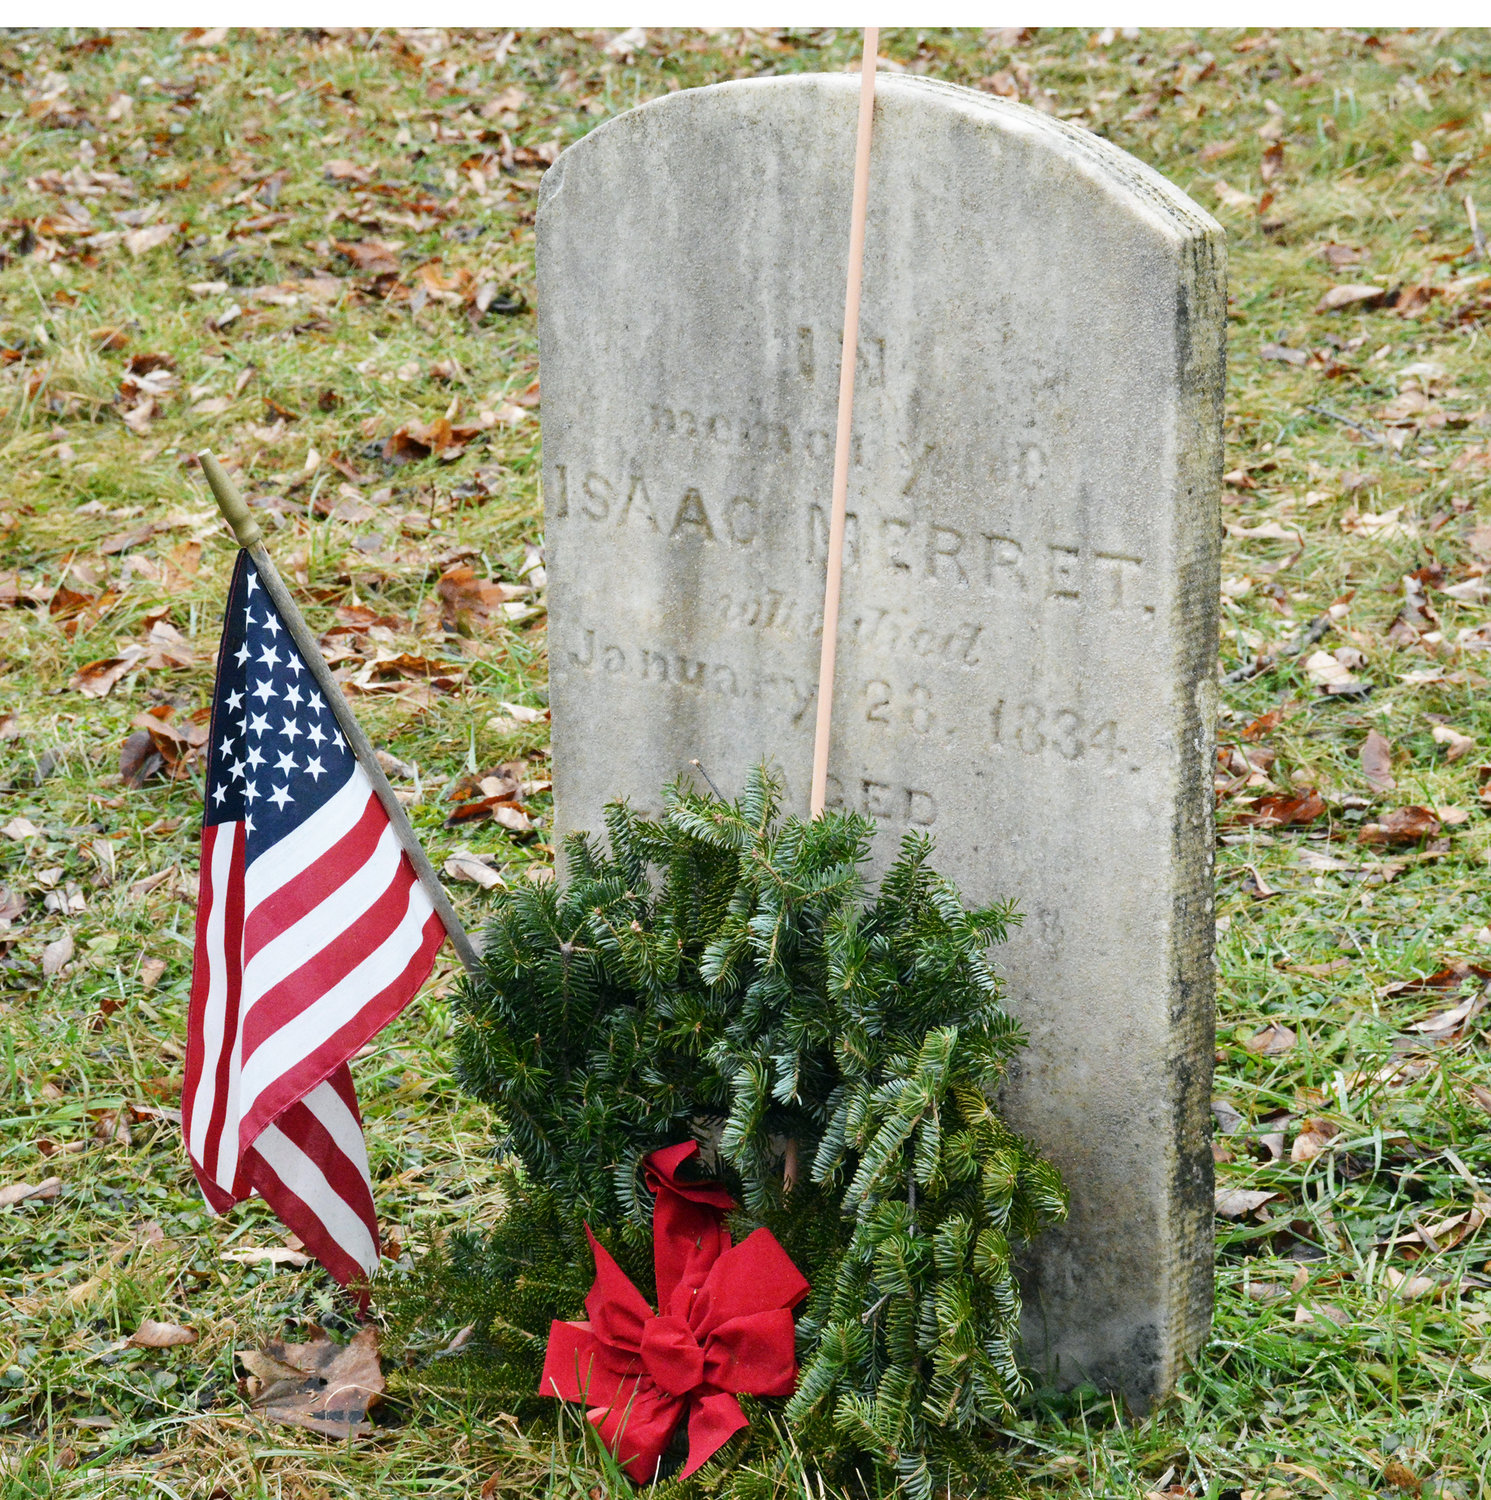 NEVER FORGET — Civil War veteran Isaac Merret is honored with a wreath to commemorate his service to his country during the Nationwide Wreaths Across America campaign on Saturday, Dec. 14 at the Old Burial Ground in the Village of Clinton.